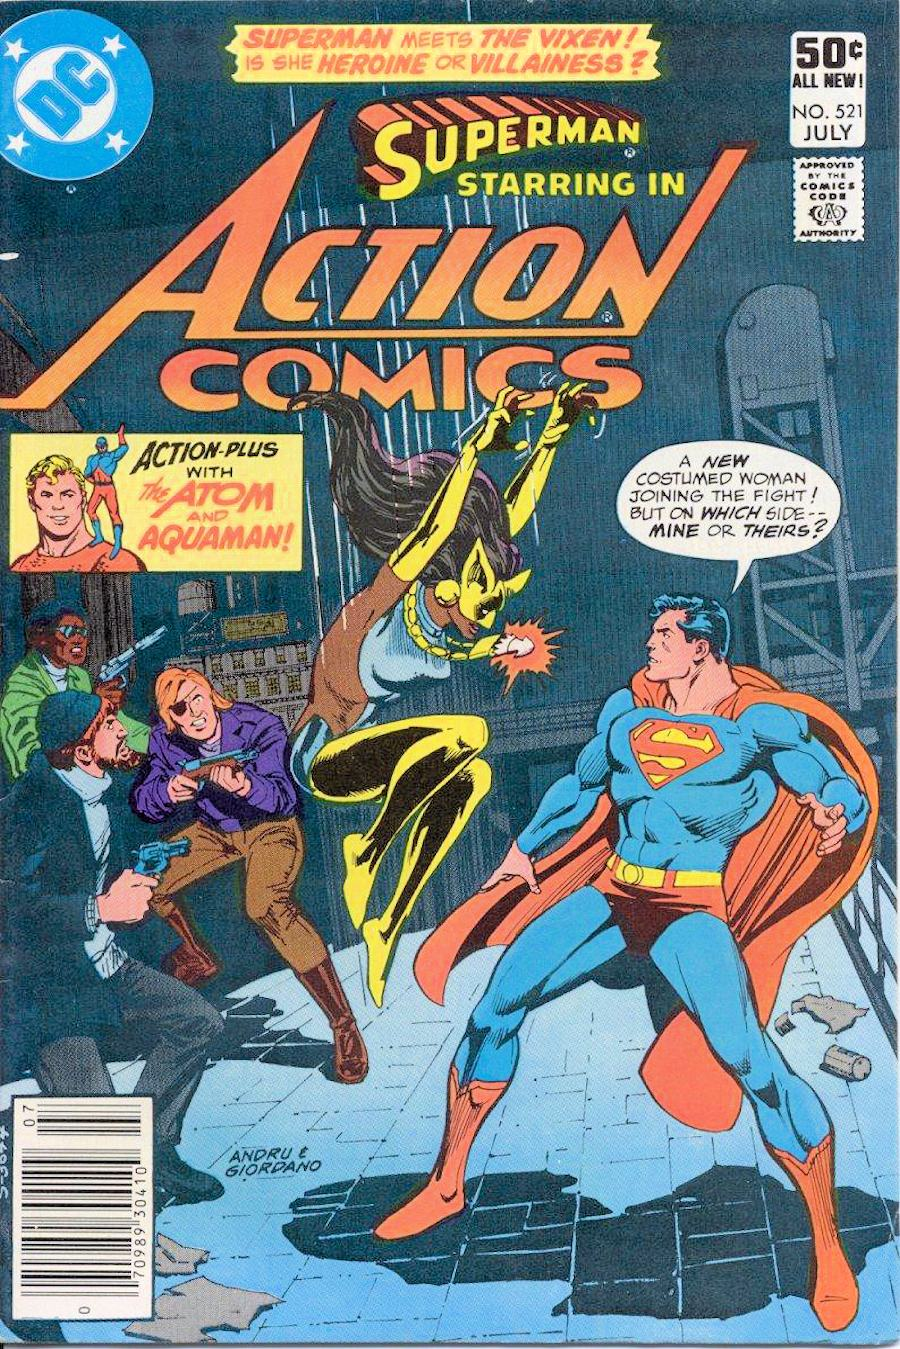 Action-Comics_521_Vol1938_DC-Comics__ComiClash